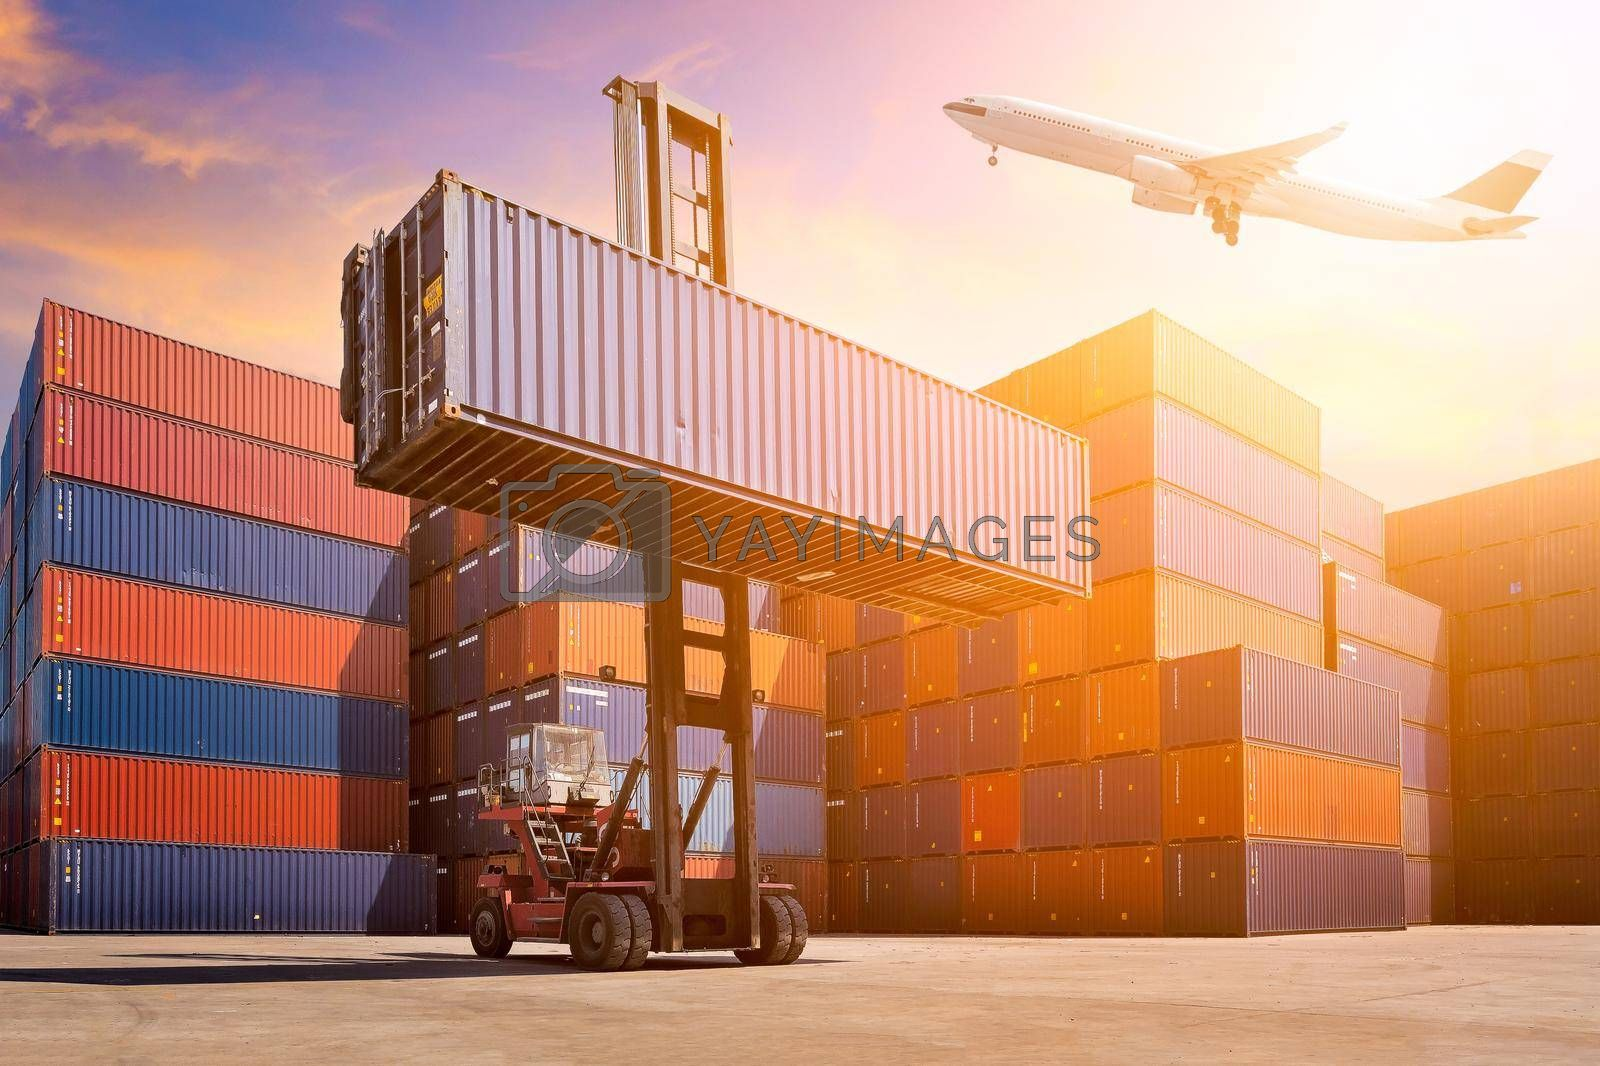 Flight cargo flying over Logistic cargo container in shipping yard. Photo concept for Global business shipping,Logistic,Import and Export industries.